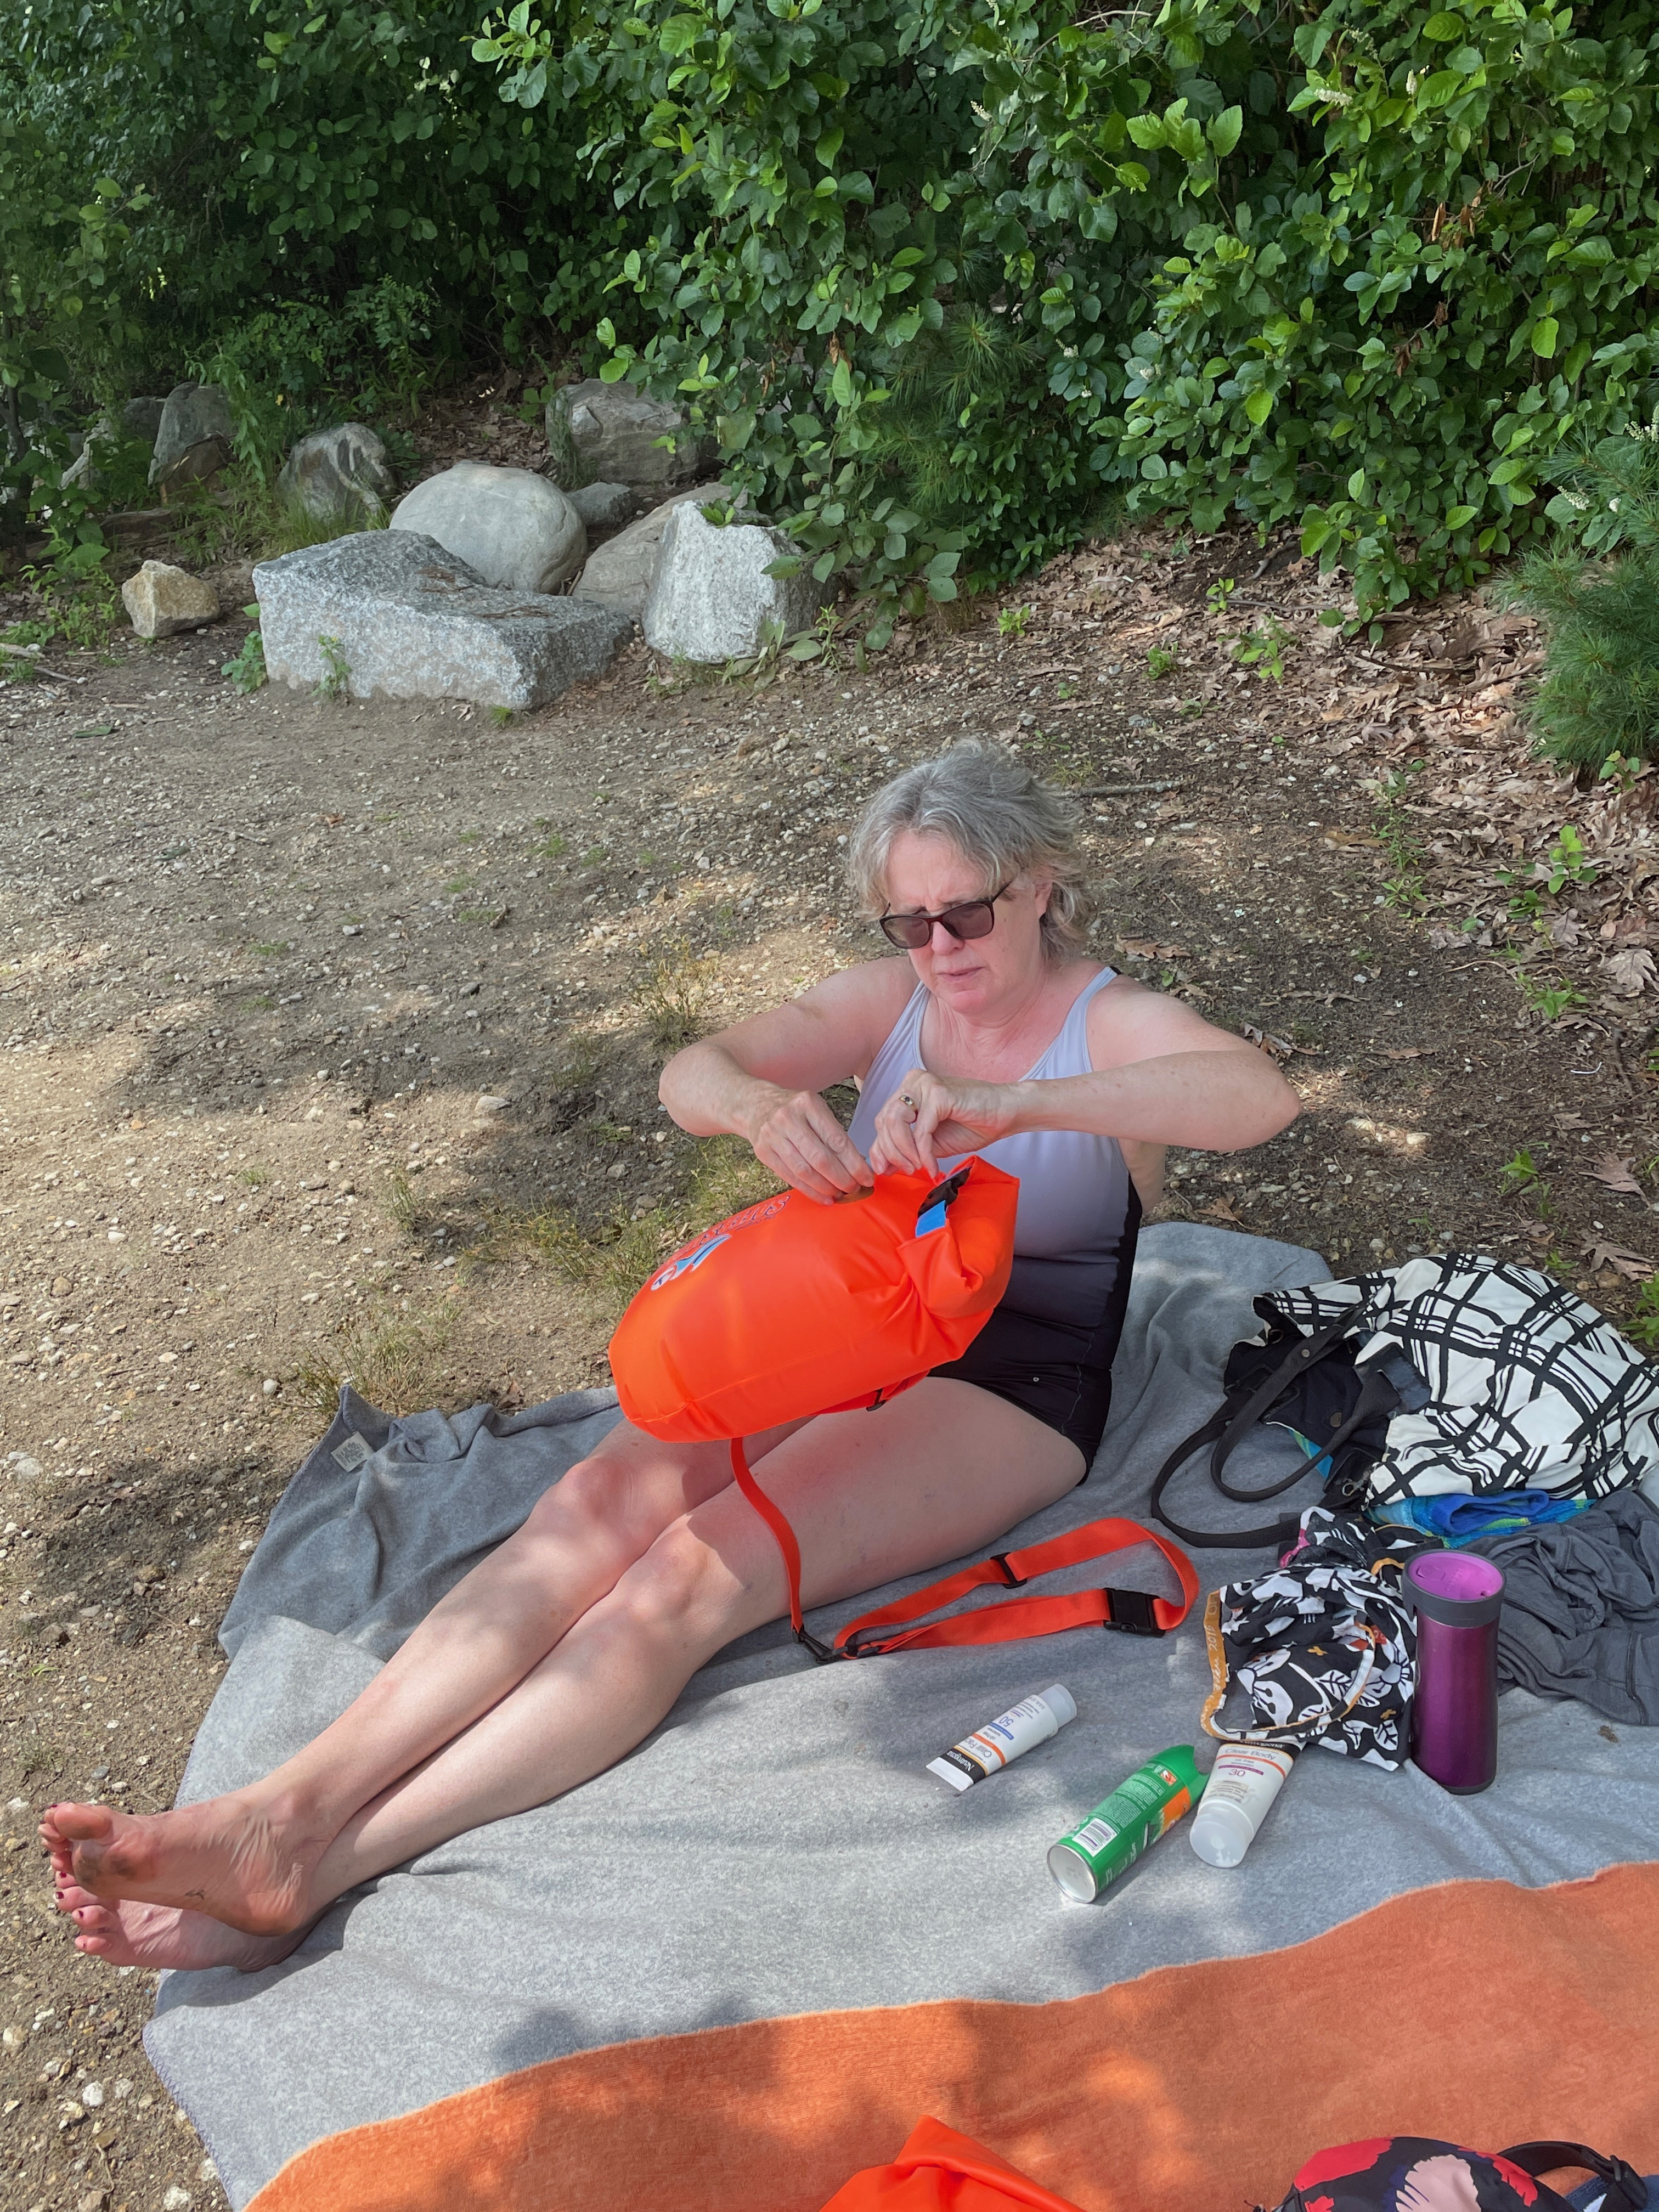 Norah, sealing up her swim buoy (an early birthday present from me).